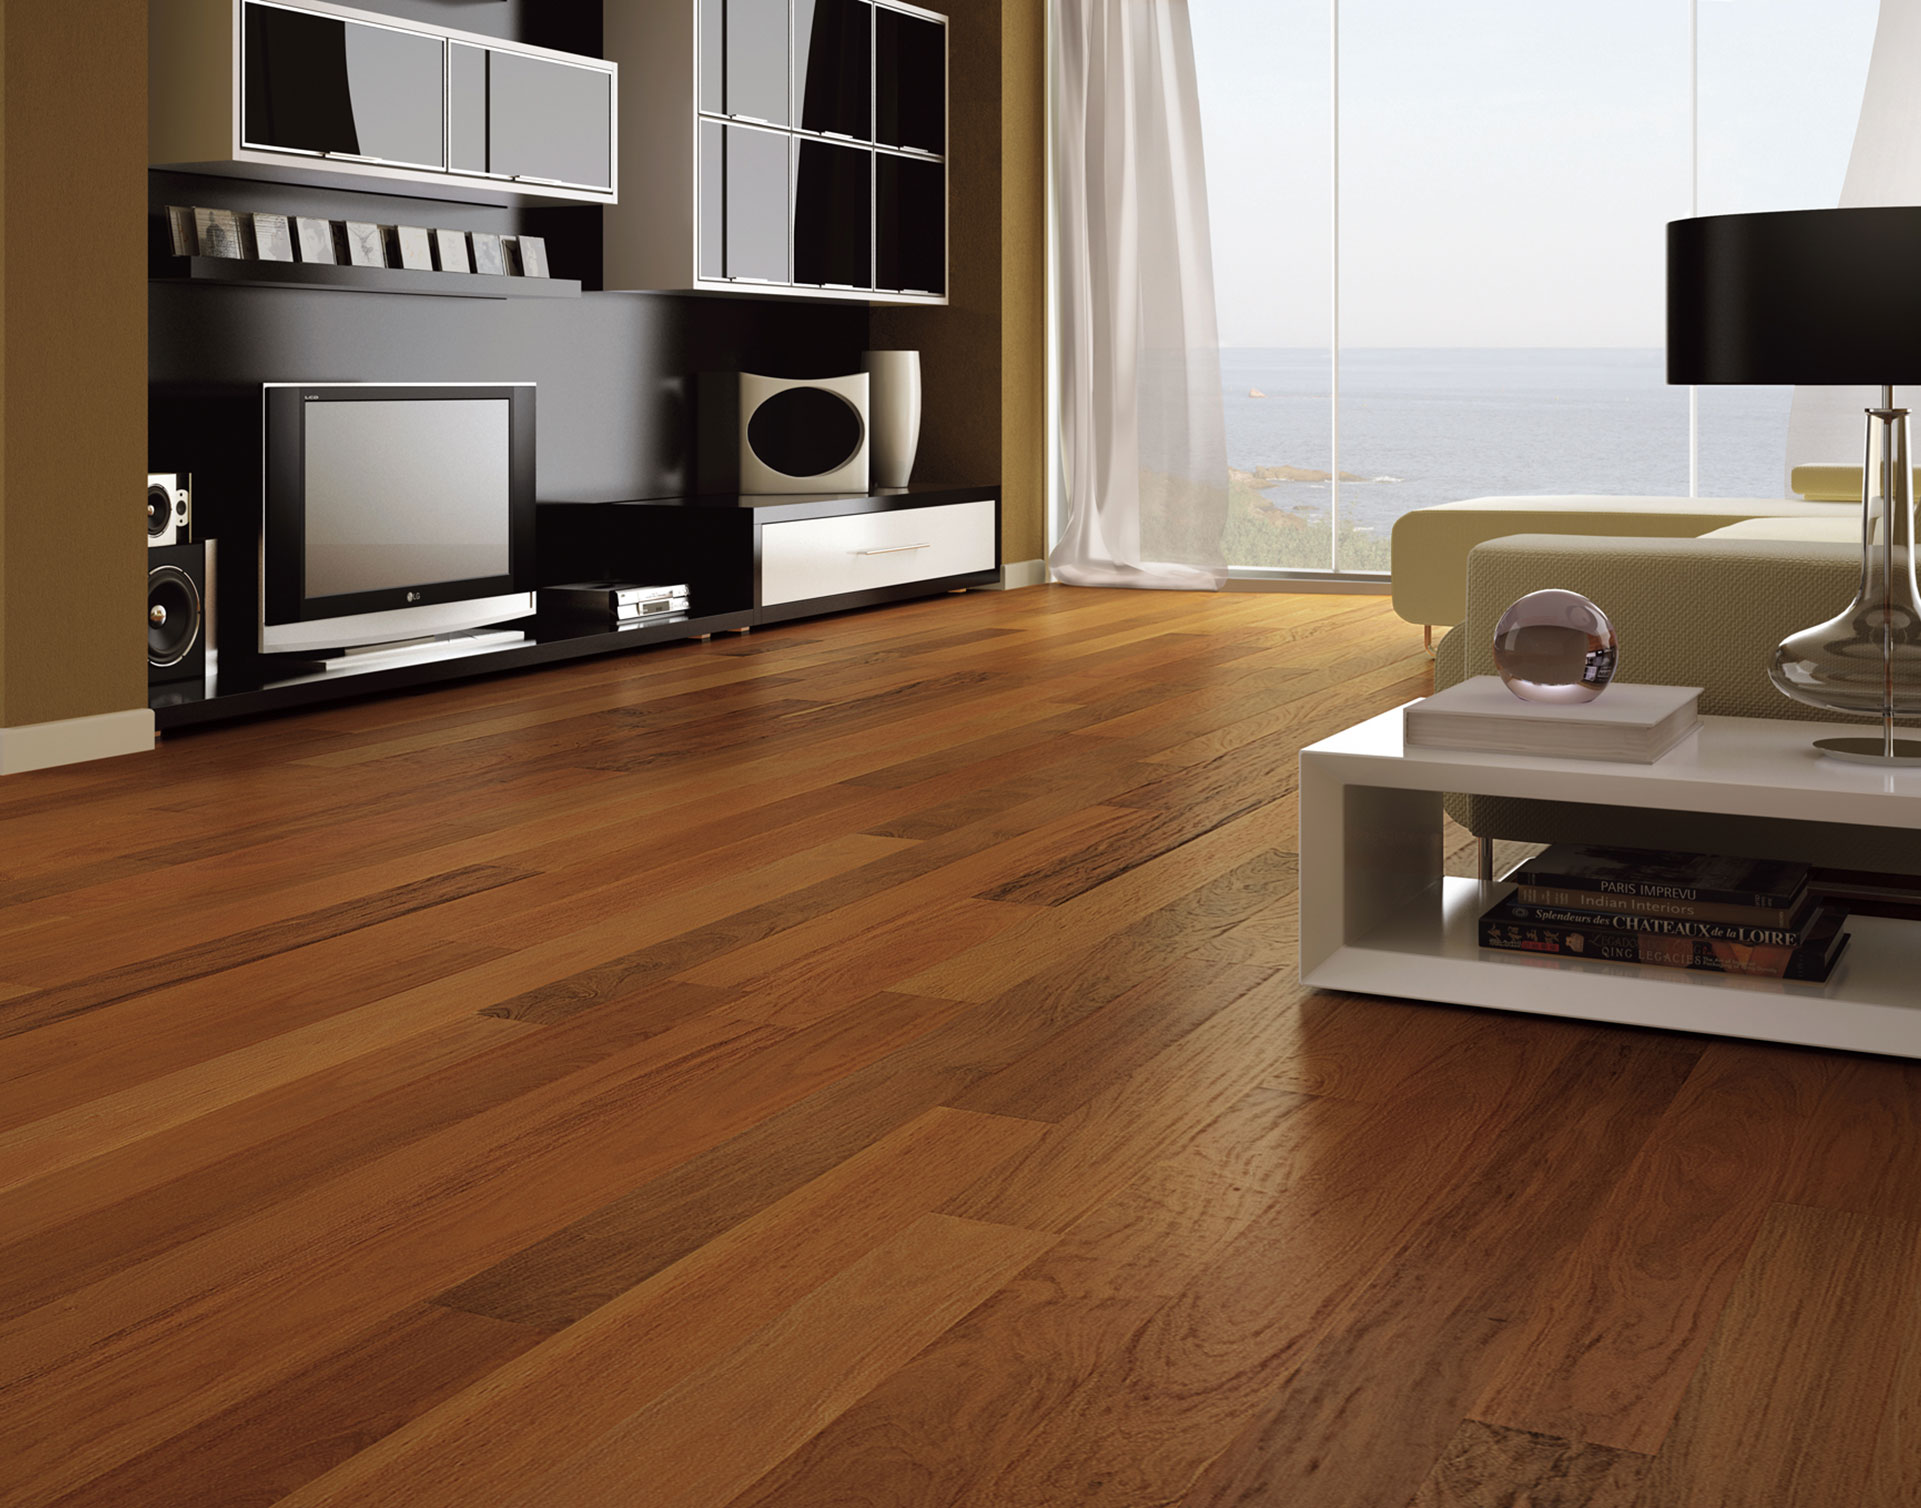 Image of: engineered wood floors design